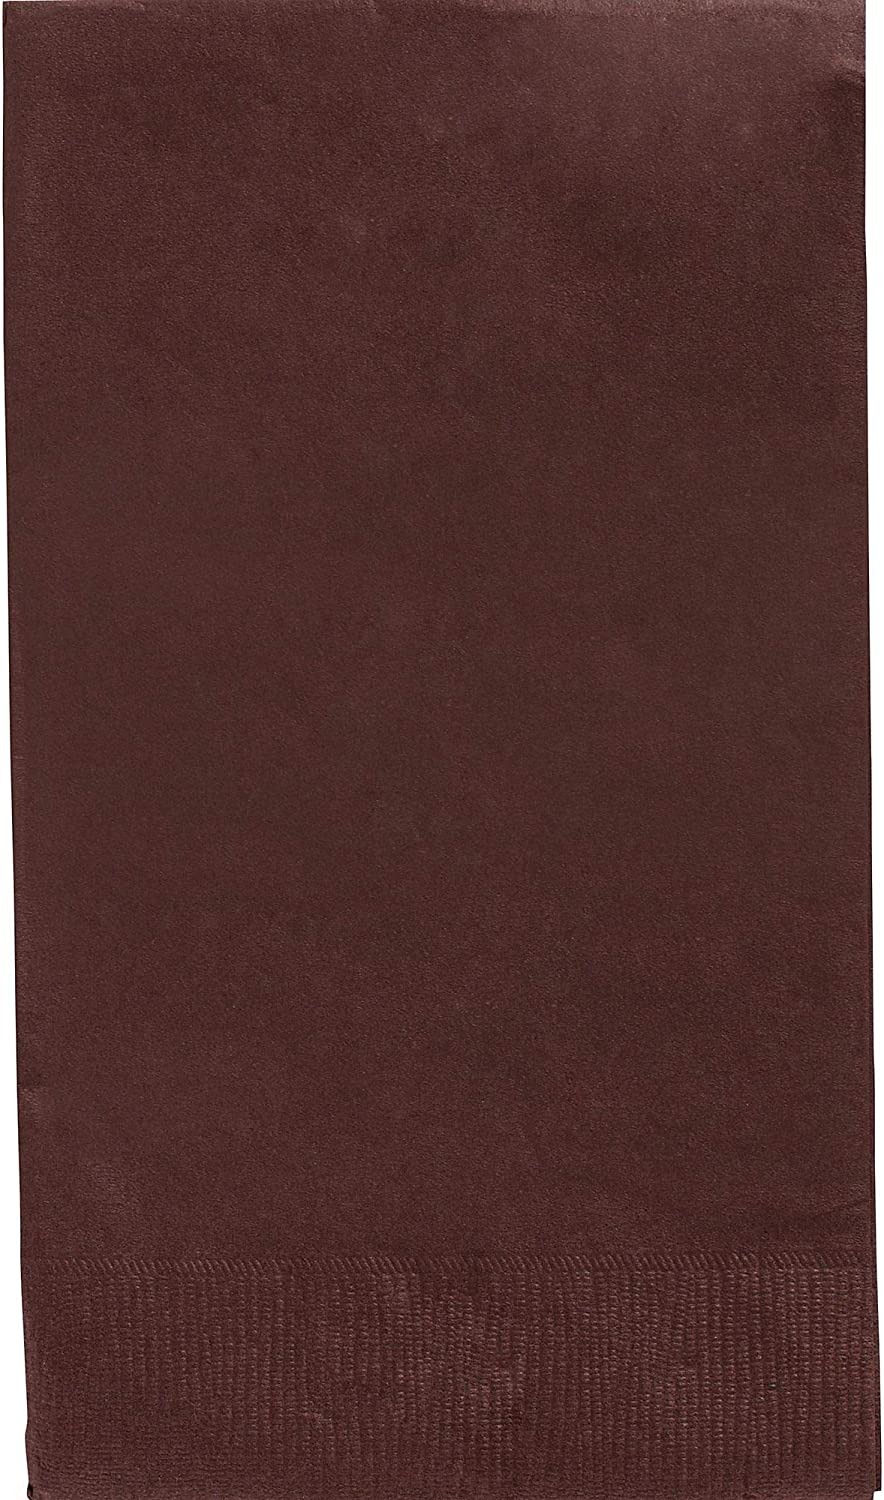 Amscan 63215.111 Big Party Pack 2‑Ply Guest Towels, Chocolate Brown Paper Napkins, 40 Pieces